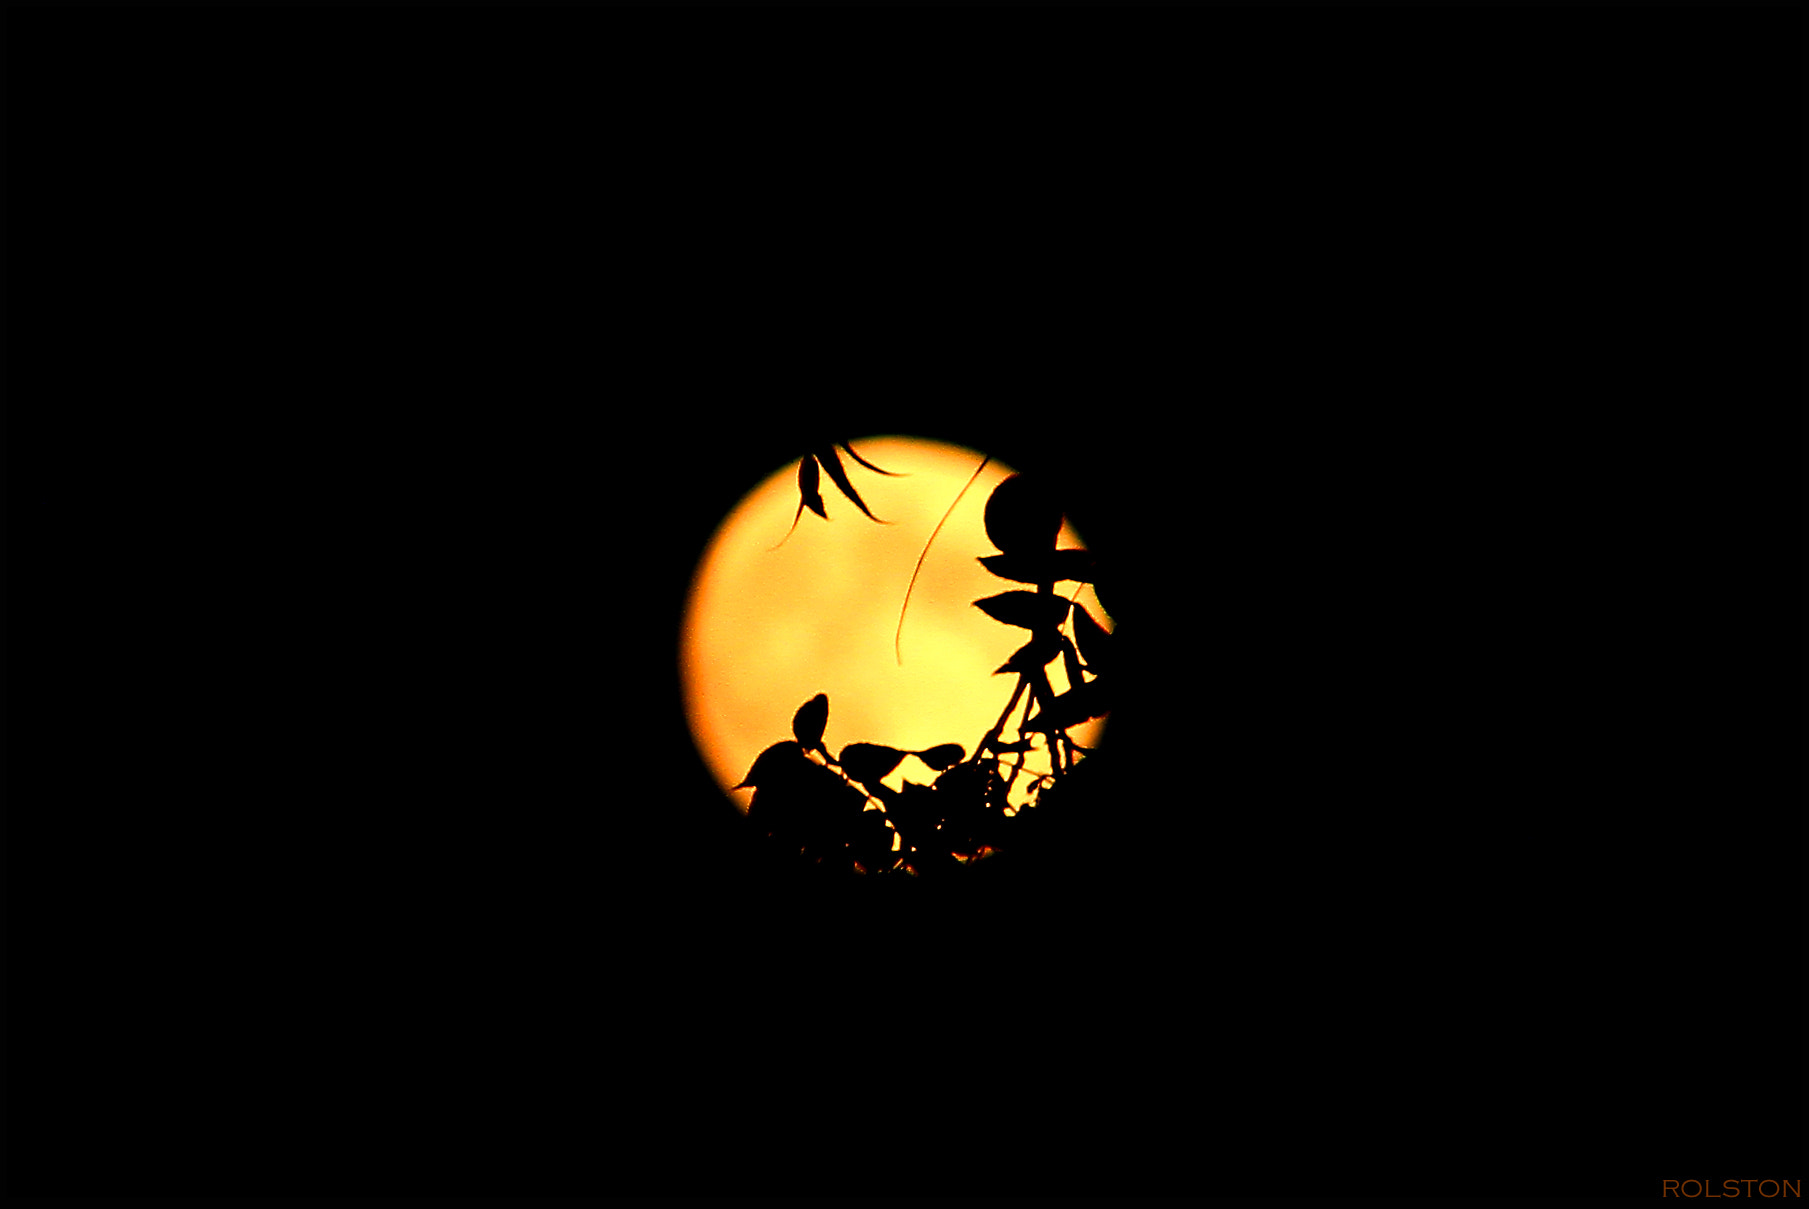 Photograph Moon Thru The Trees by Rachel Rolston on 500px